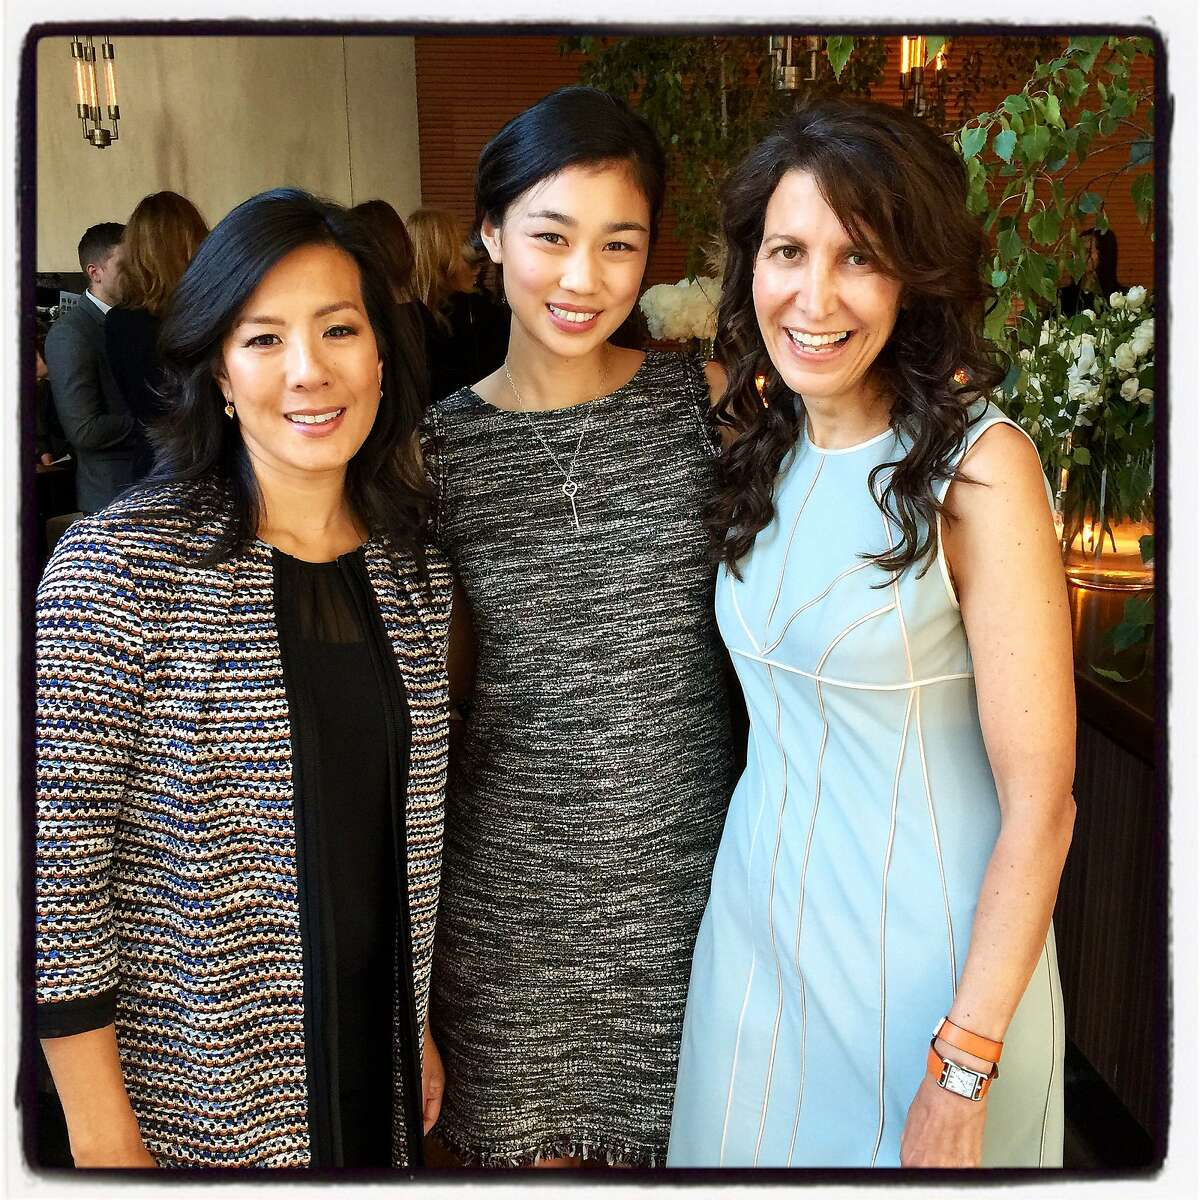 Honorees CowboyVentures founder Aileen Lee and Pinterest Engineering Lead Tracy Chou (at left) with Sherpa Foundry CEO Tina Sharkey at the Elle Women in Tech dinner at Prospect Restaurant. June 2015. By Catherine Bigelow.